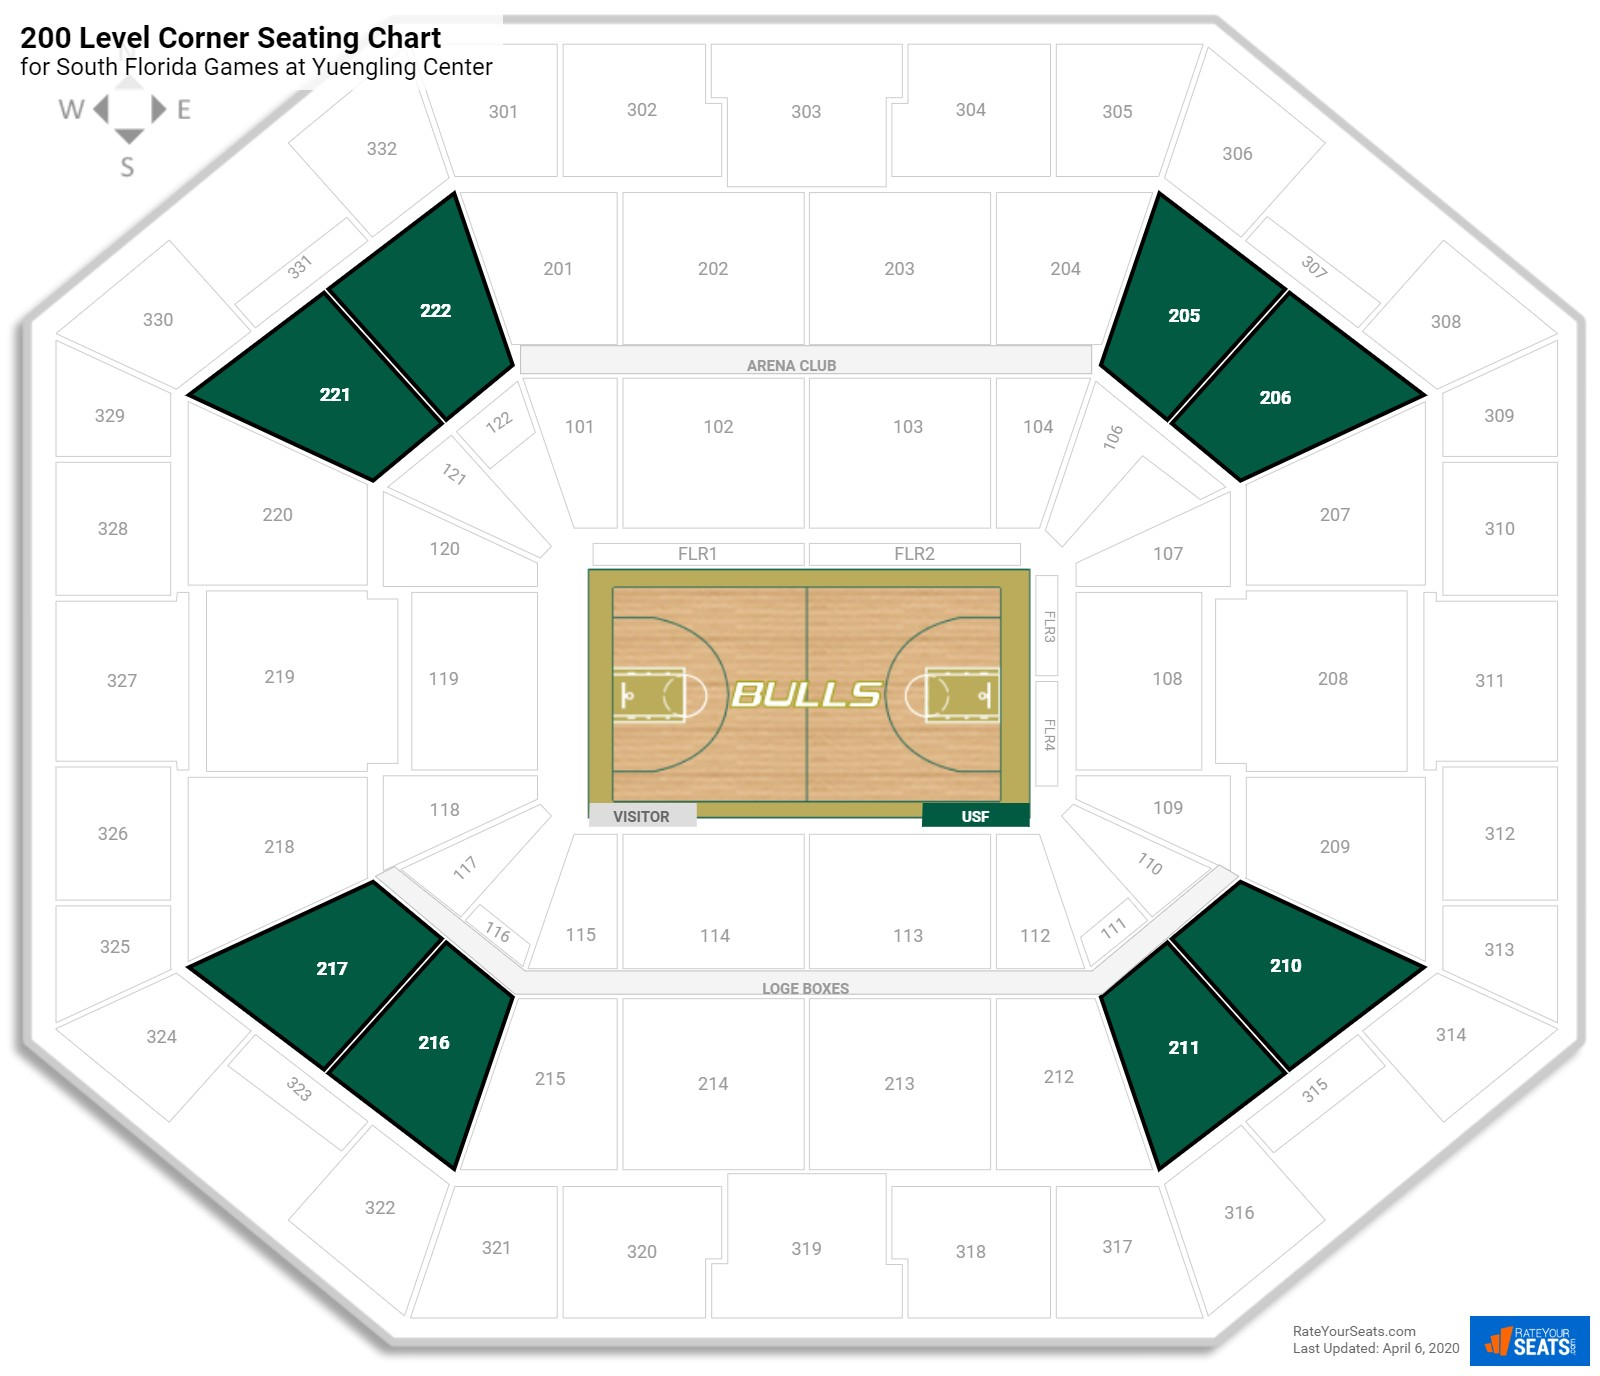 Yuengling center south florida seating guide rateyourseats com